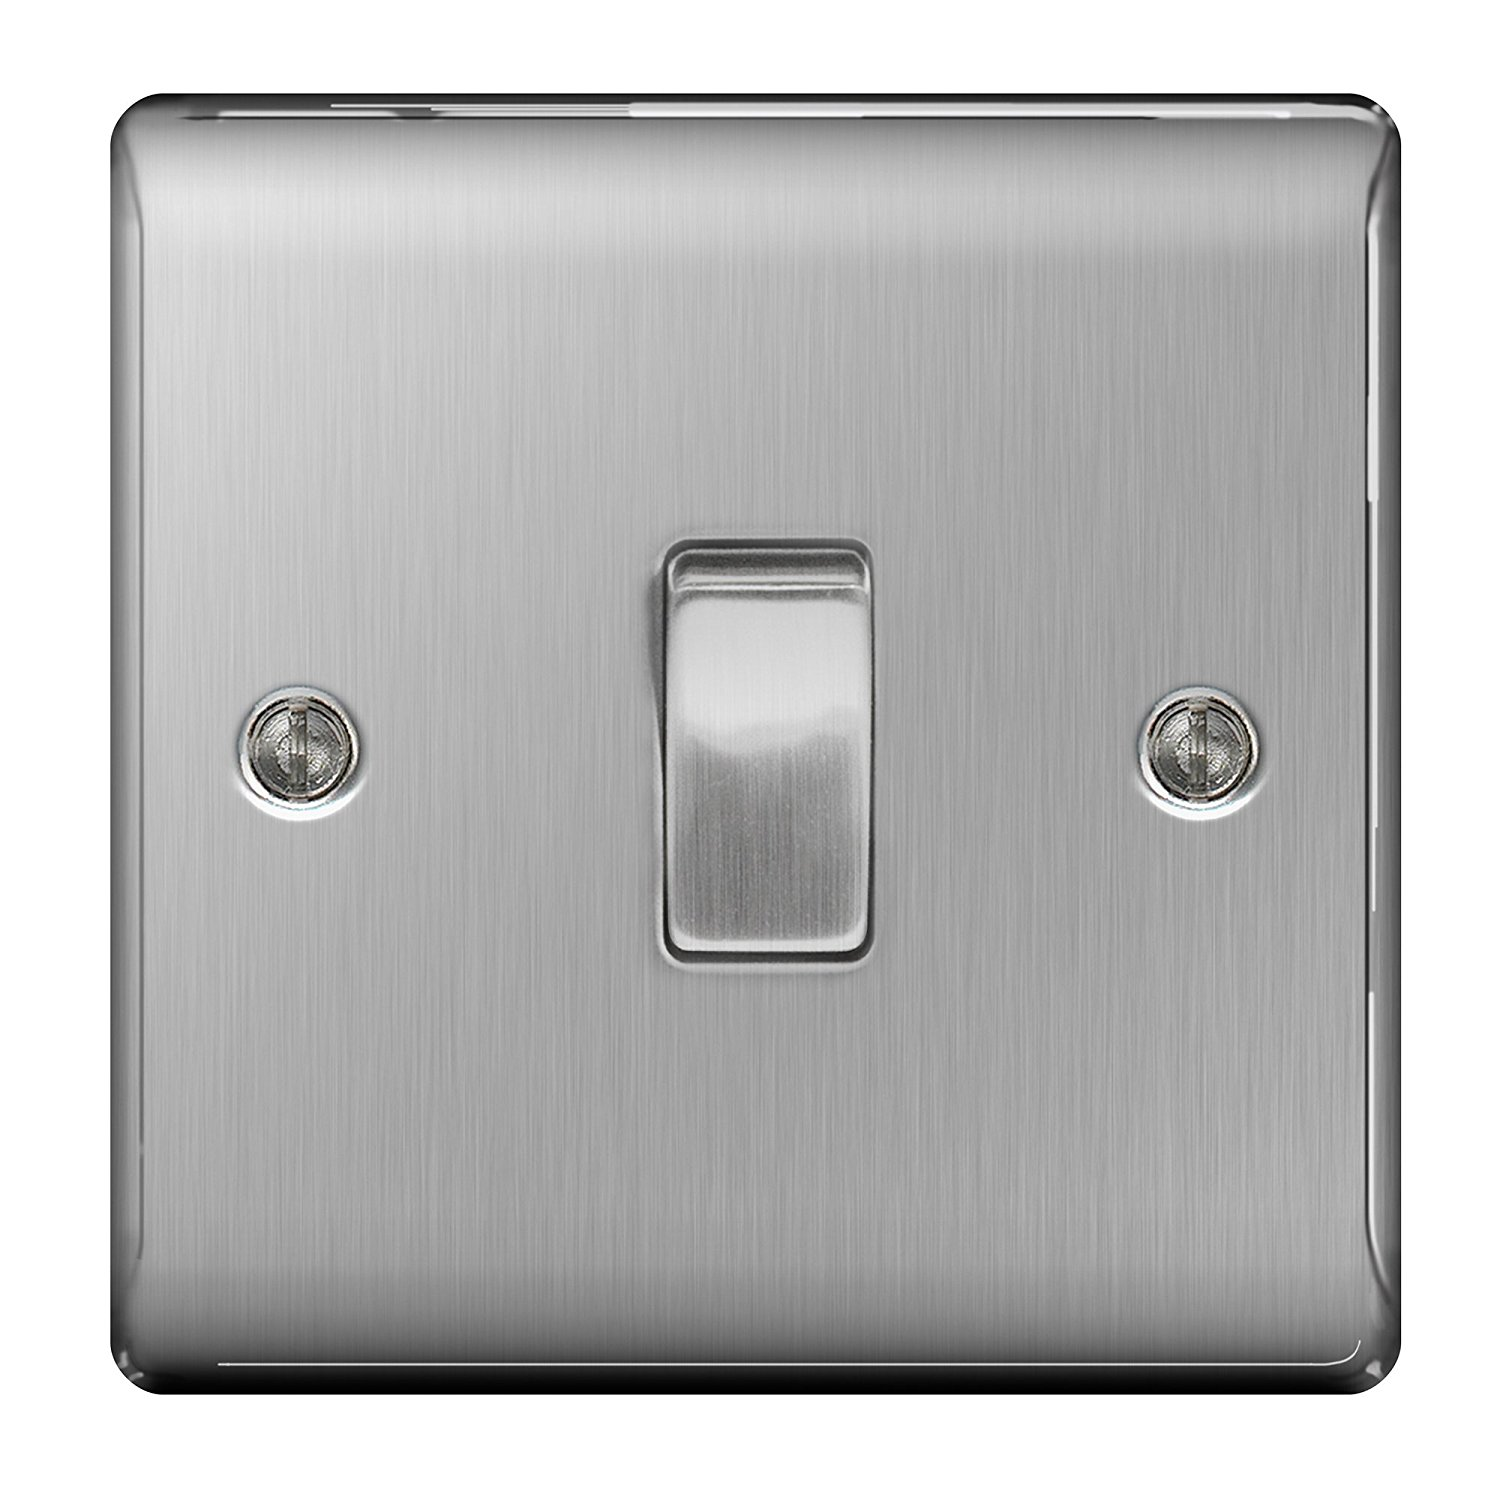 1500x1500 Masterplug Nbs12 10 A 1 Gang 2 Way Metal Brushed Steel Light